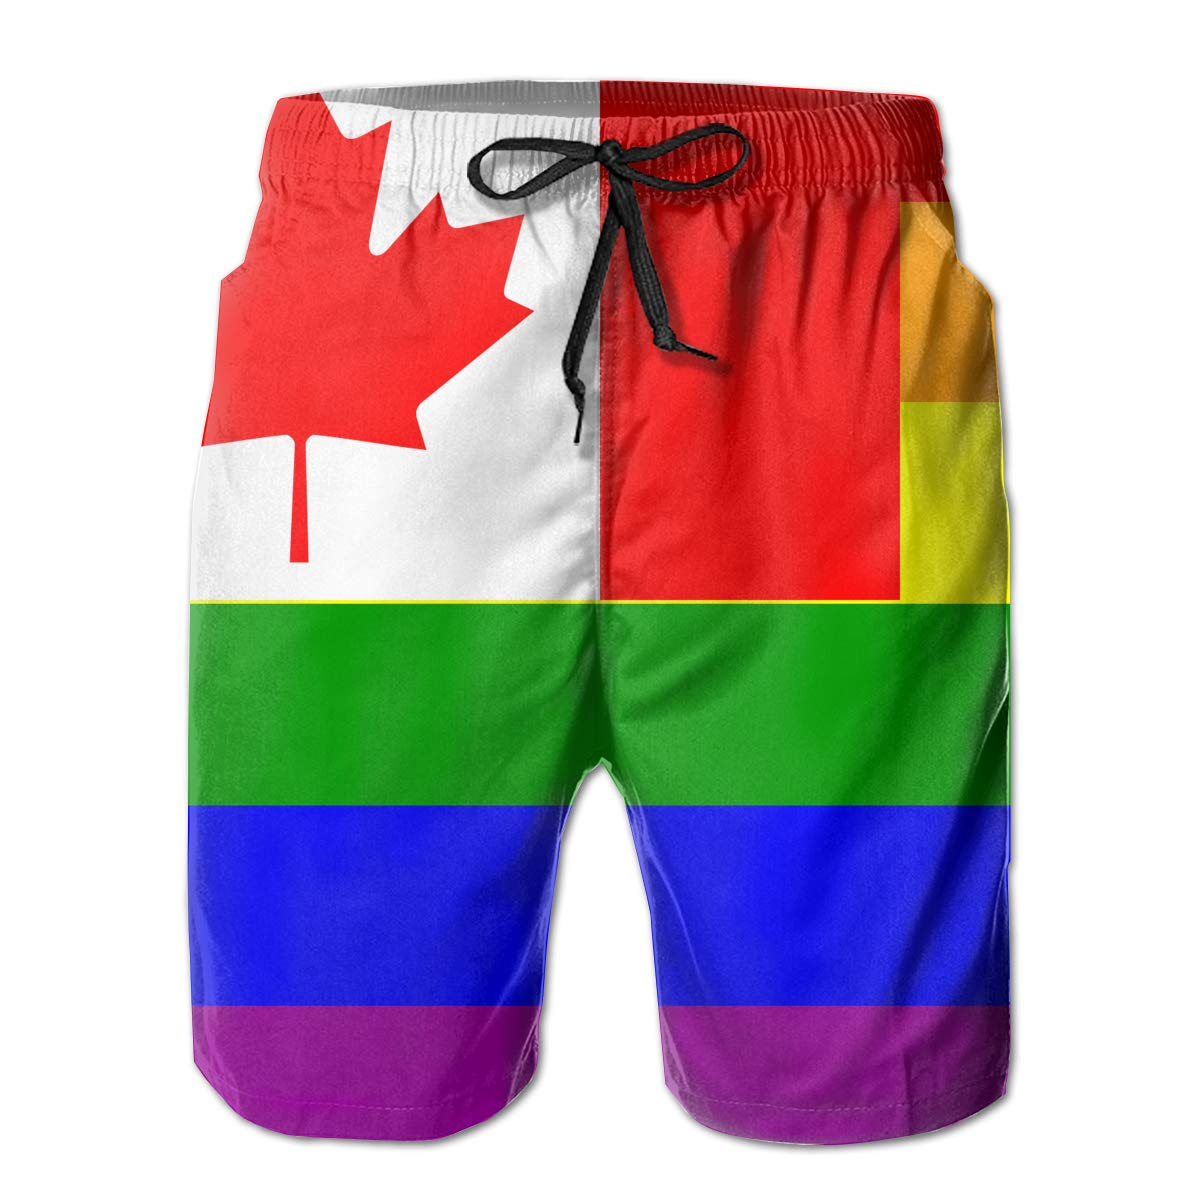 Canada Rainbow Flag Mens Quick Dry Beach Shorts Breathable Swim Trunks Board Shorts Pants